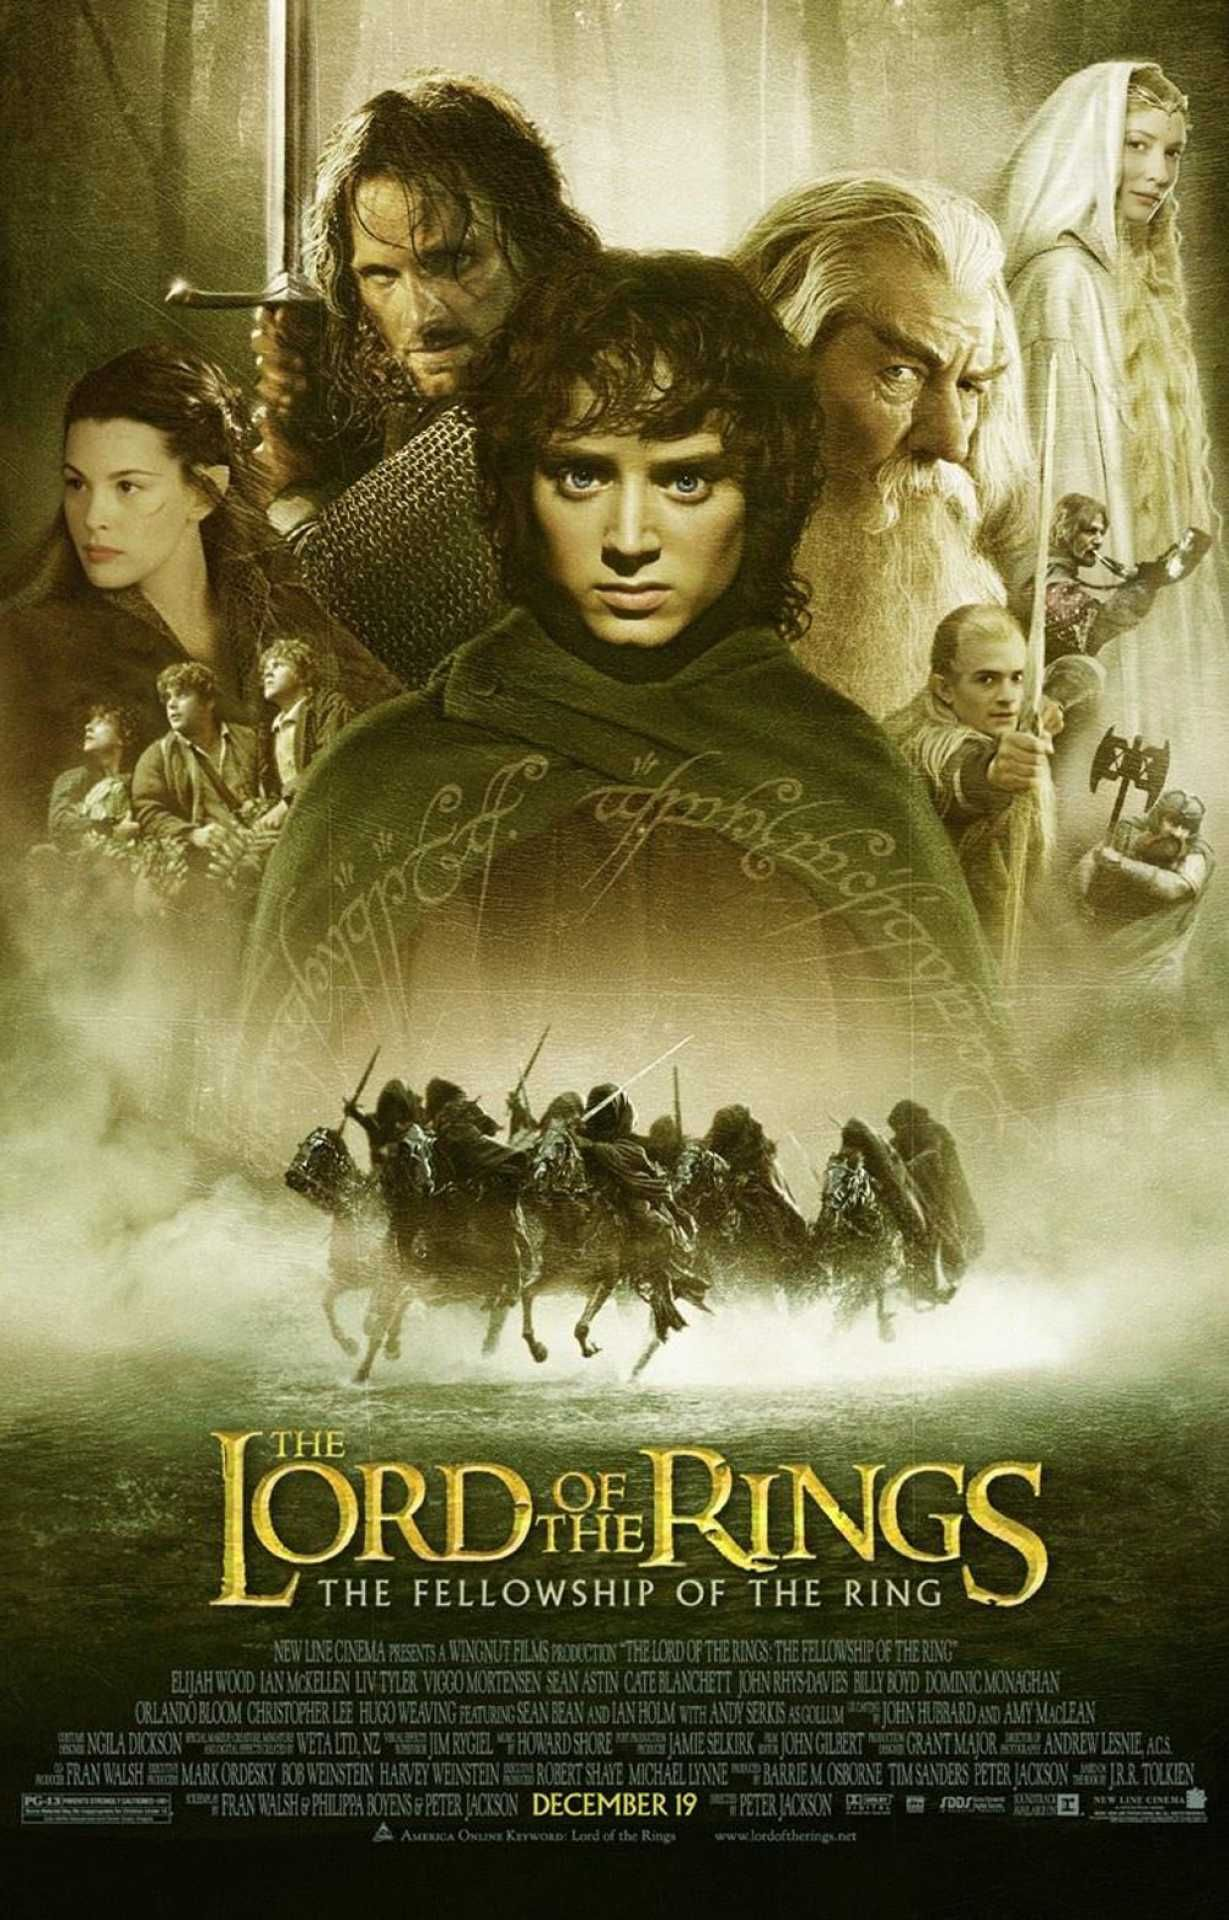 The Lord Of The Rings Fellowship Of The Ring Movie Poster 2001